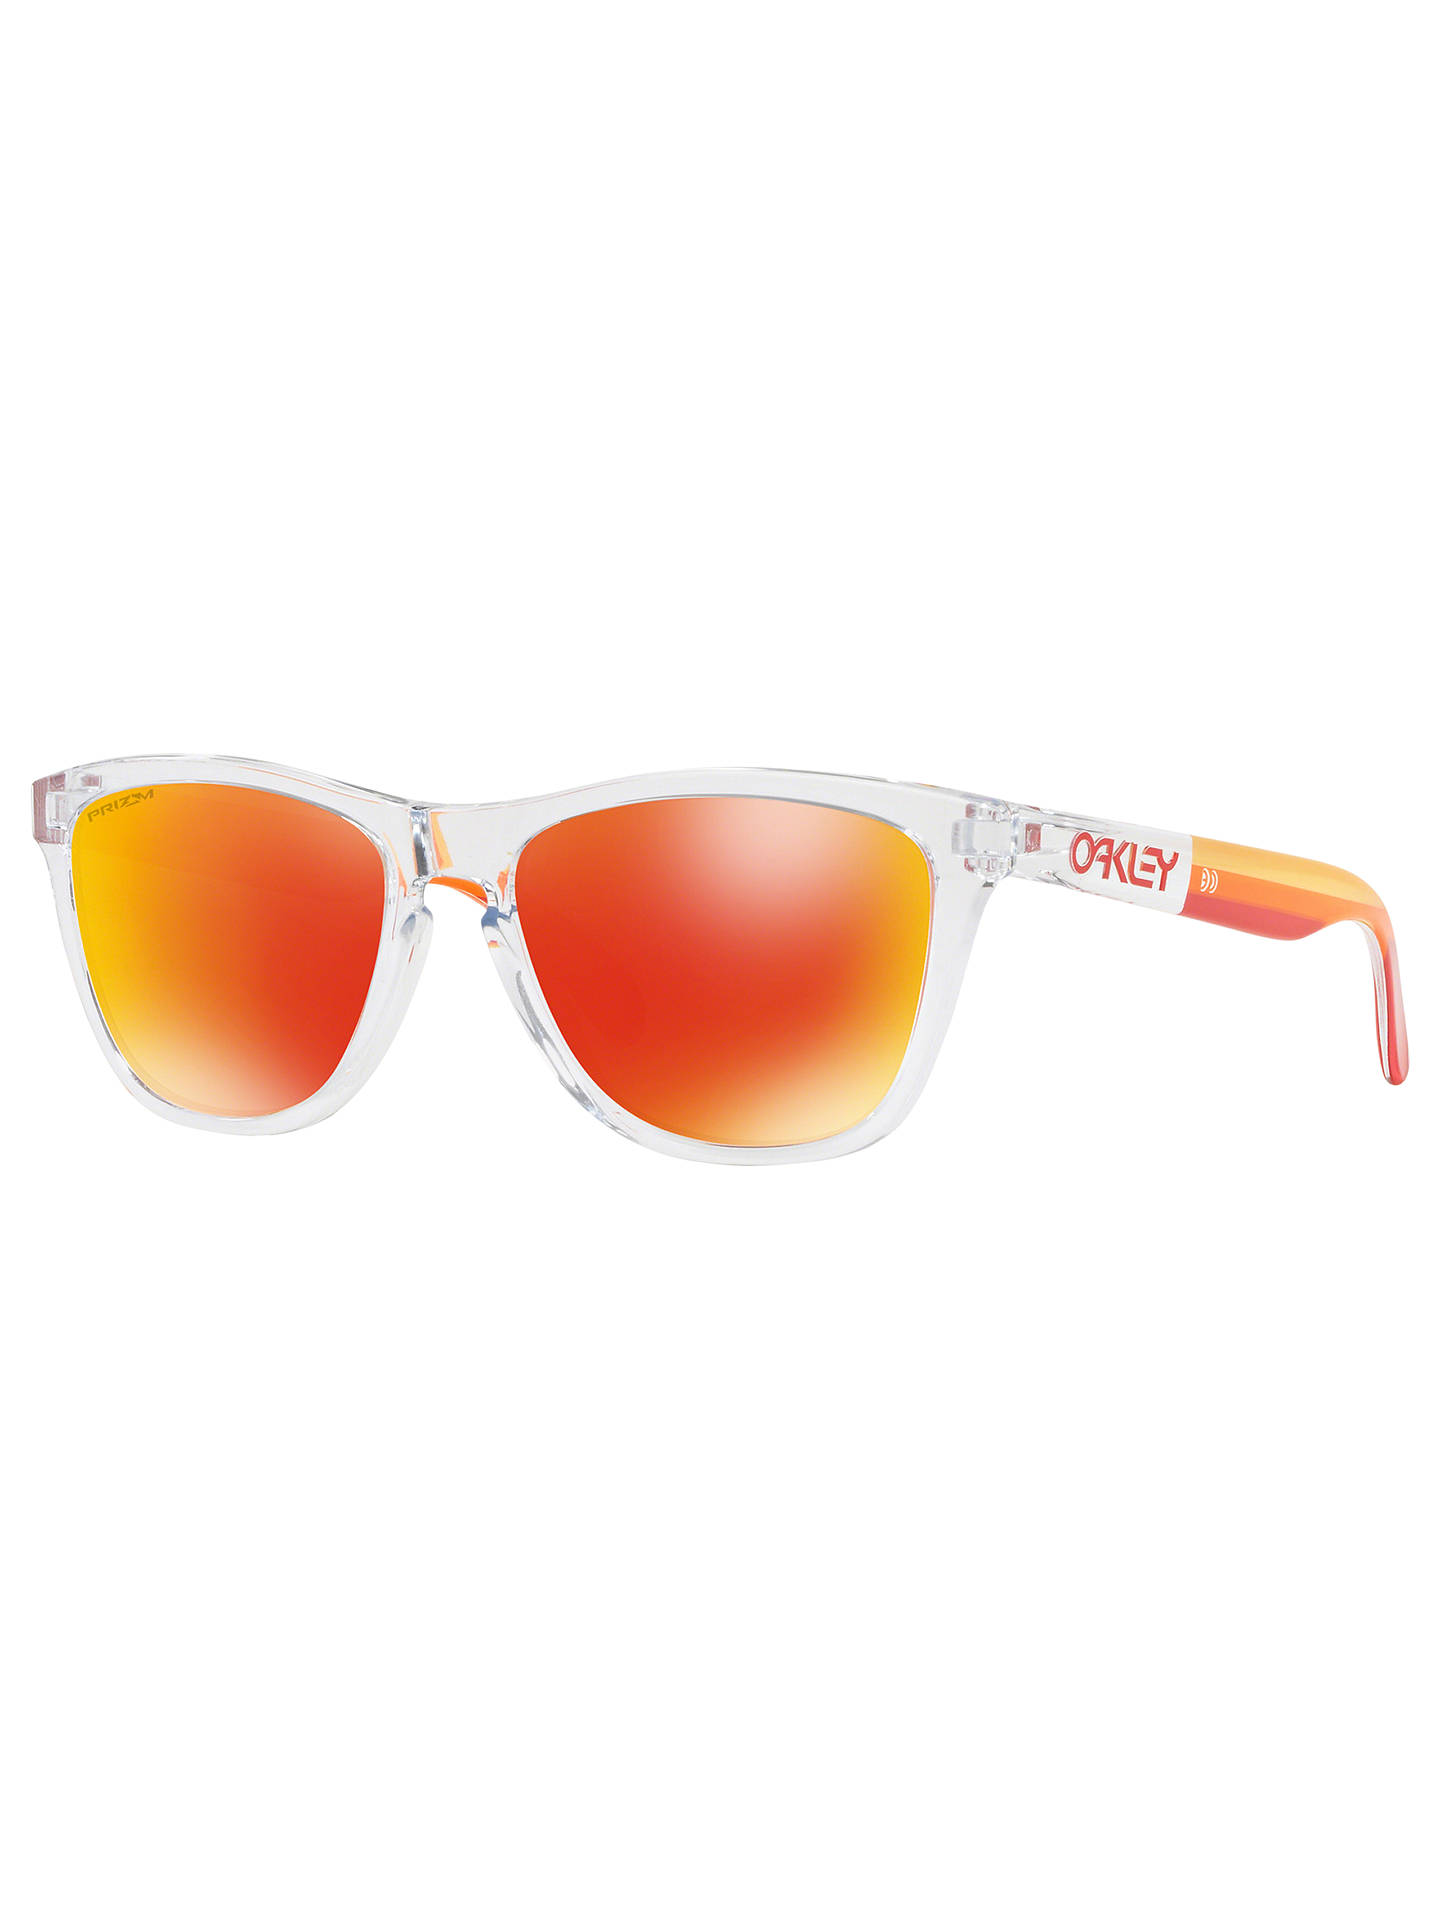 74521a7d6e ... discount code for buyoakley oo9013 mens frogskins grips square  sunglasses clear online at johnlewis. da5c4 promo code for oakley oo24 29855  ...